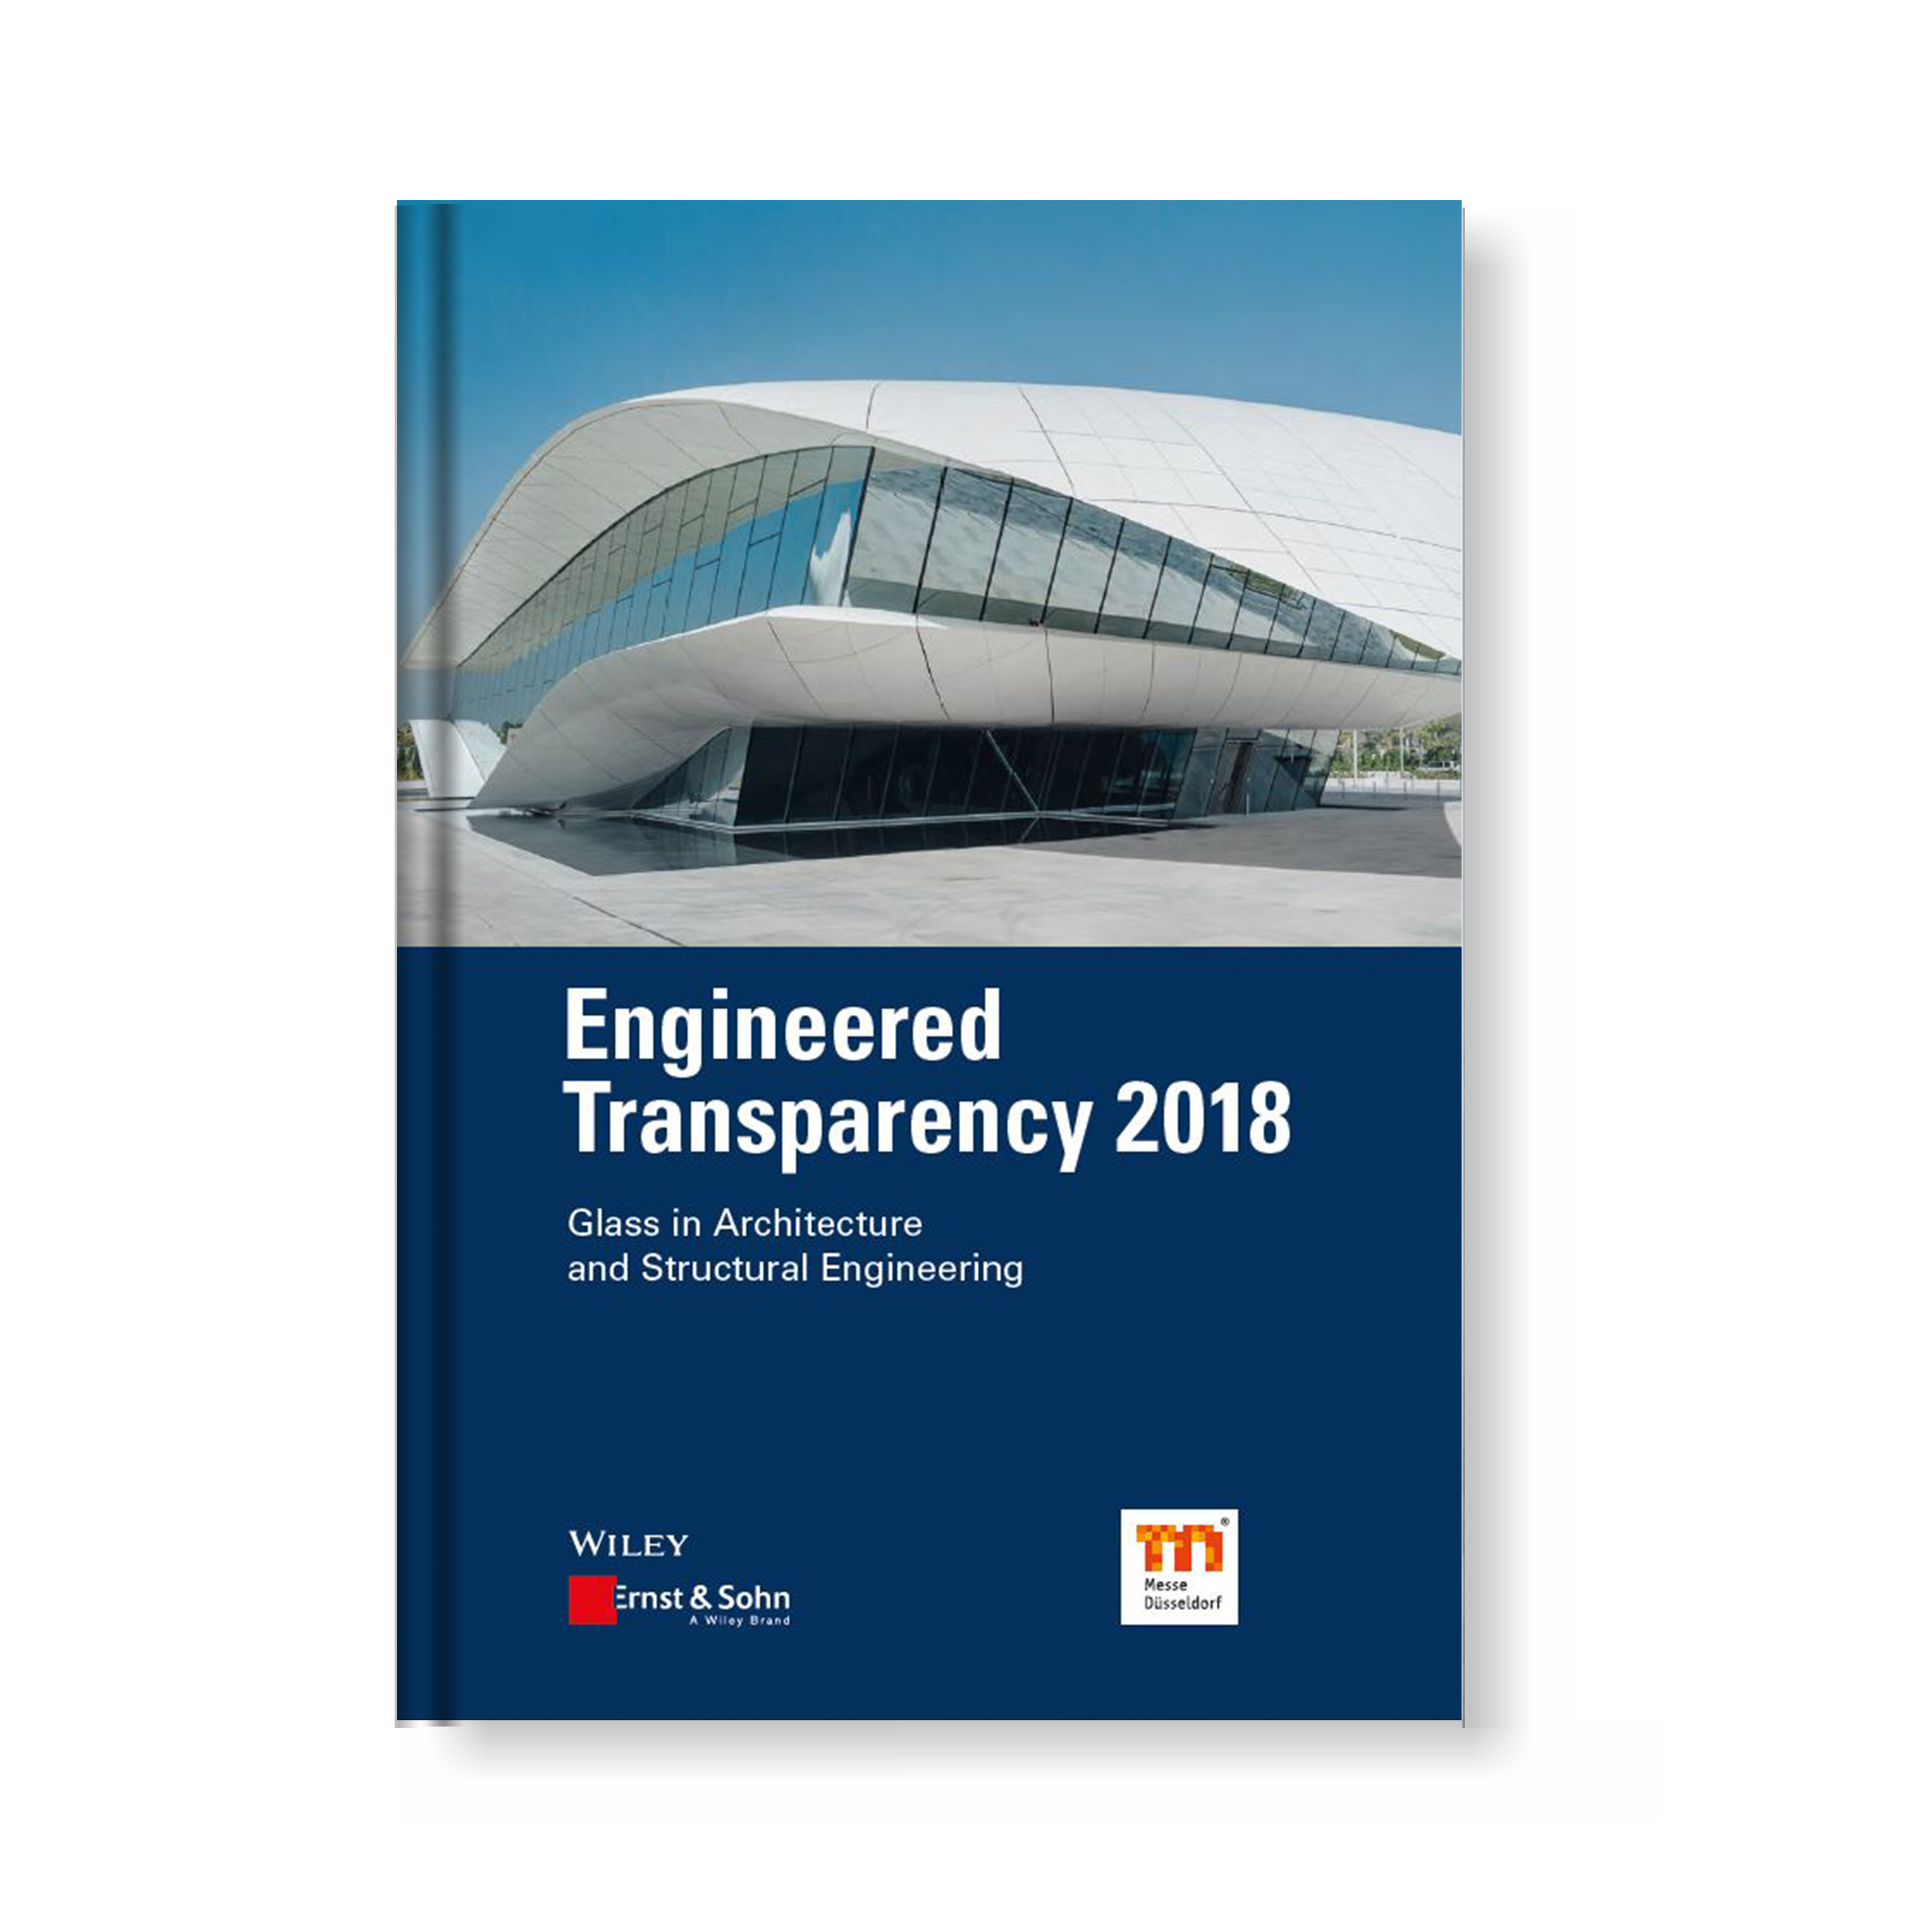 Engineered Transparency 2018 – Glass in Architecture and Structural Engineering